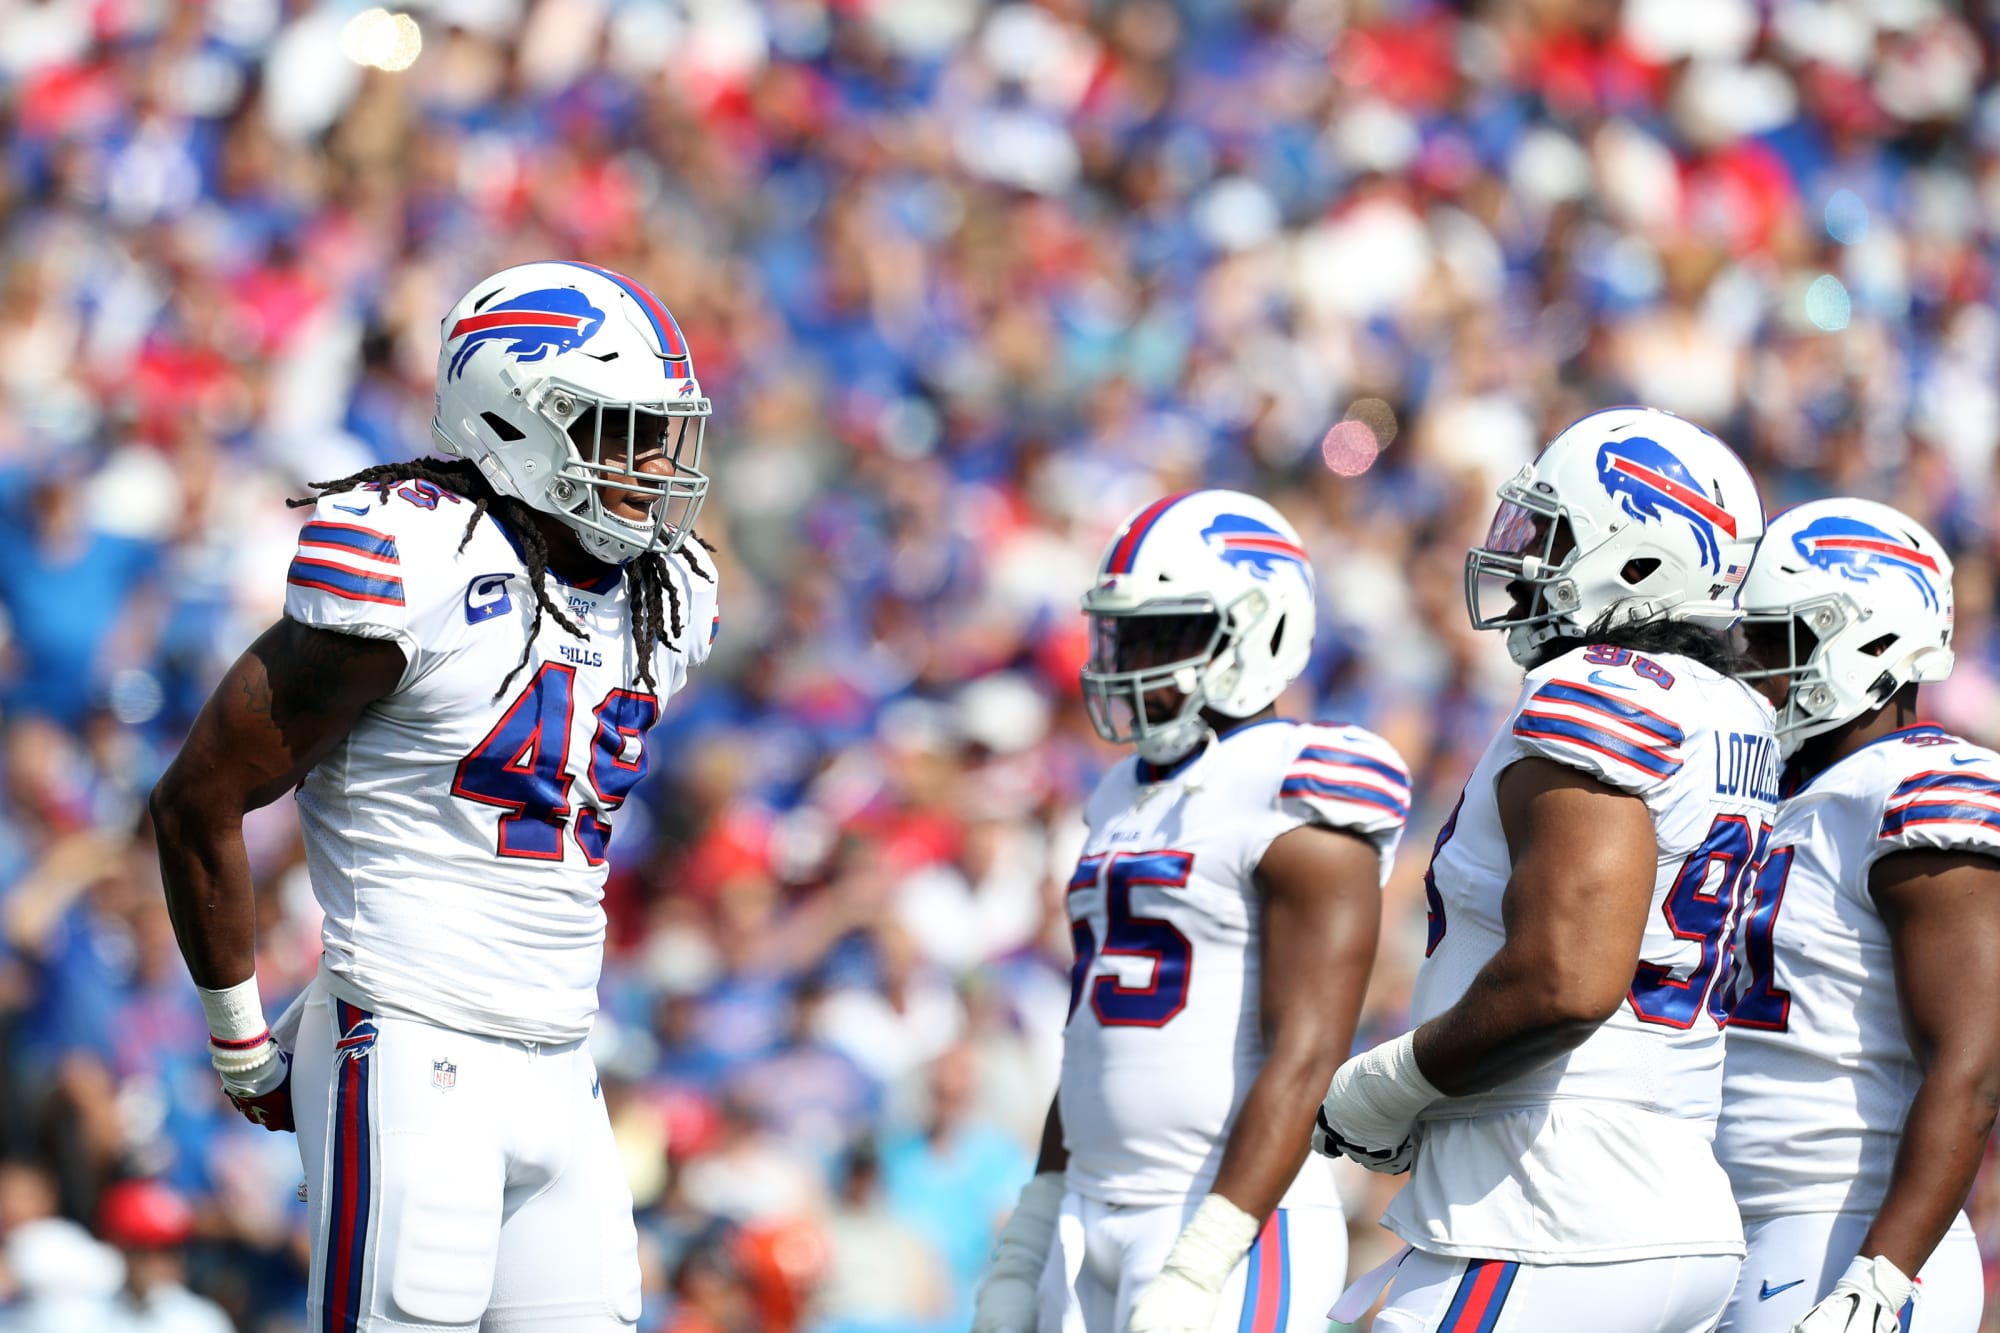 Buffalo Bills picked as one of the most complete teams of 2020 by analyst